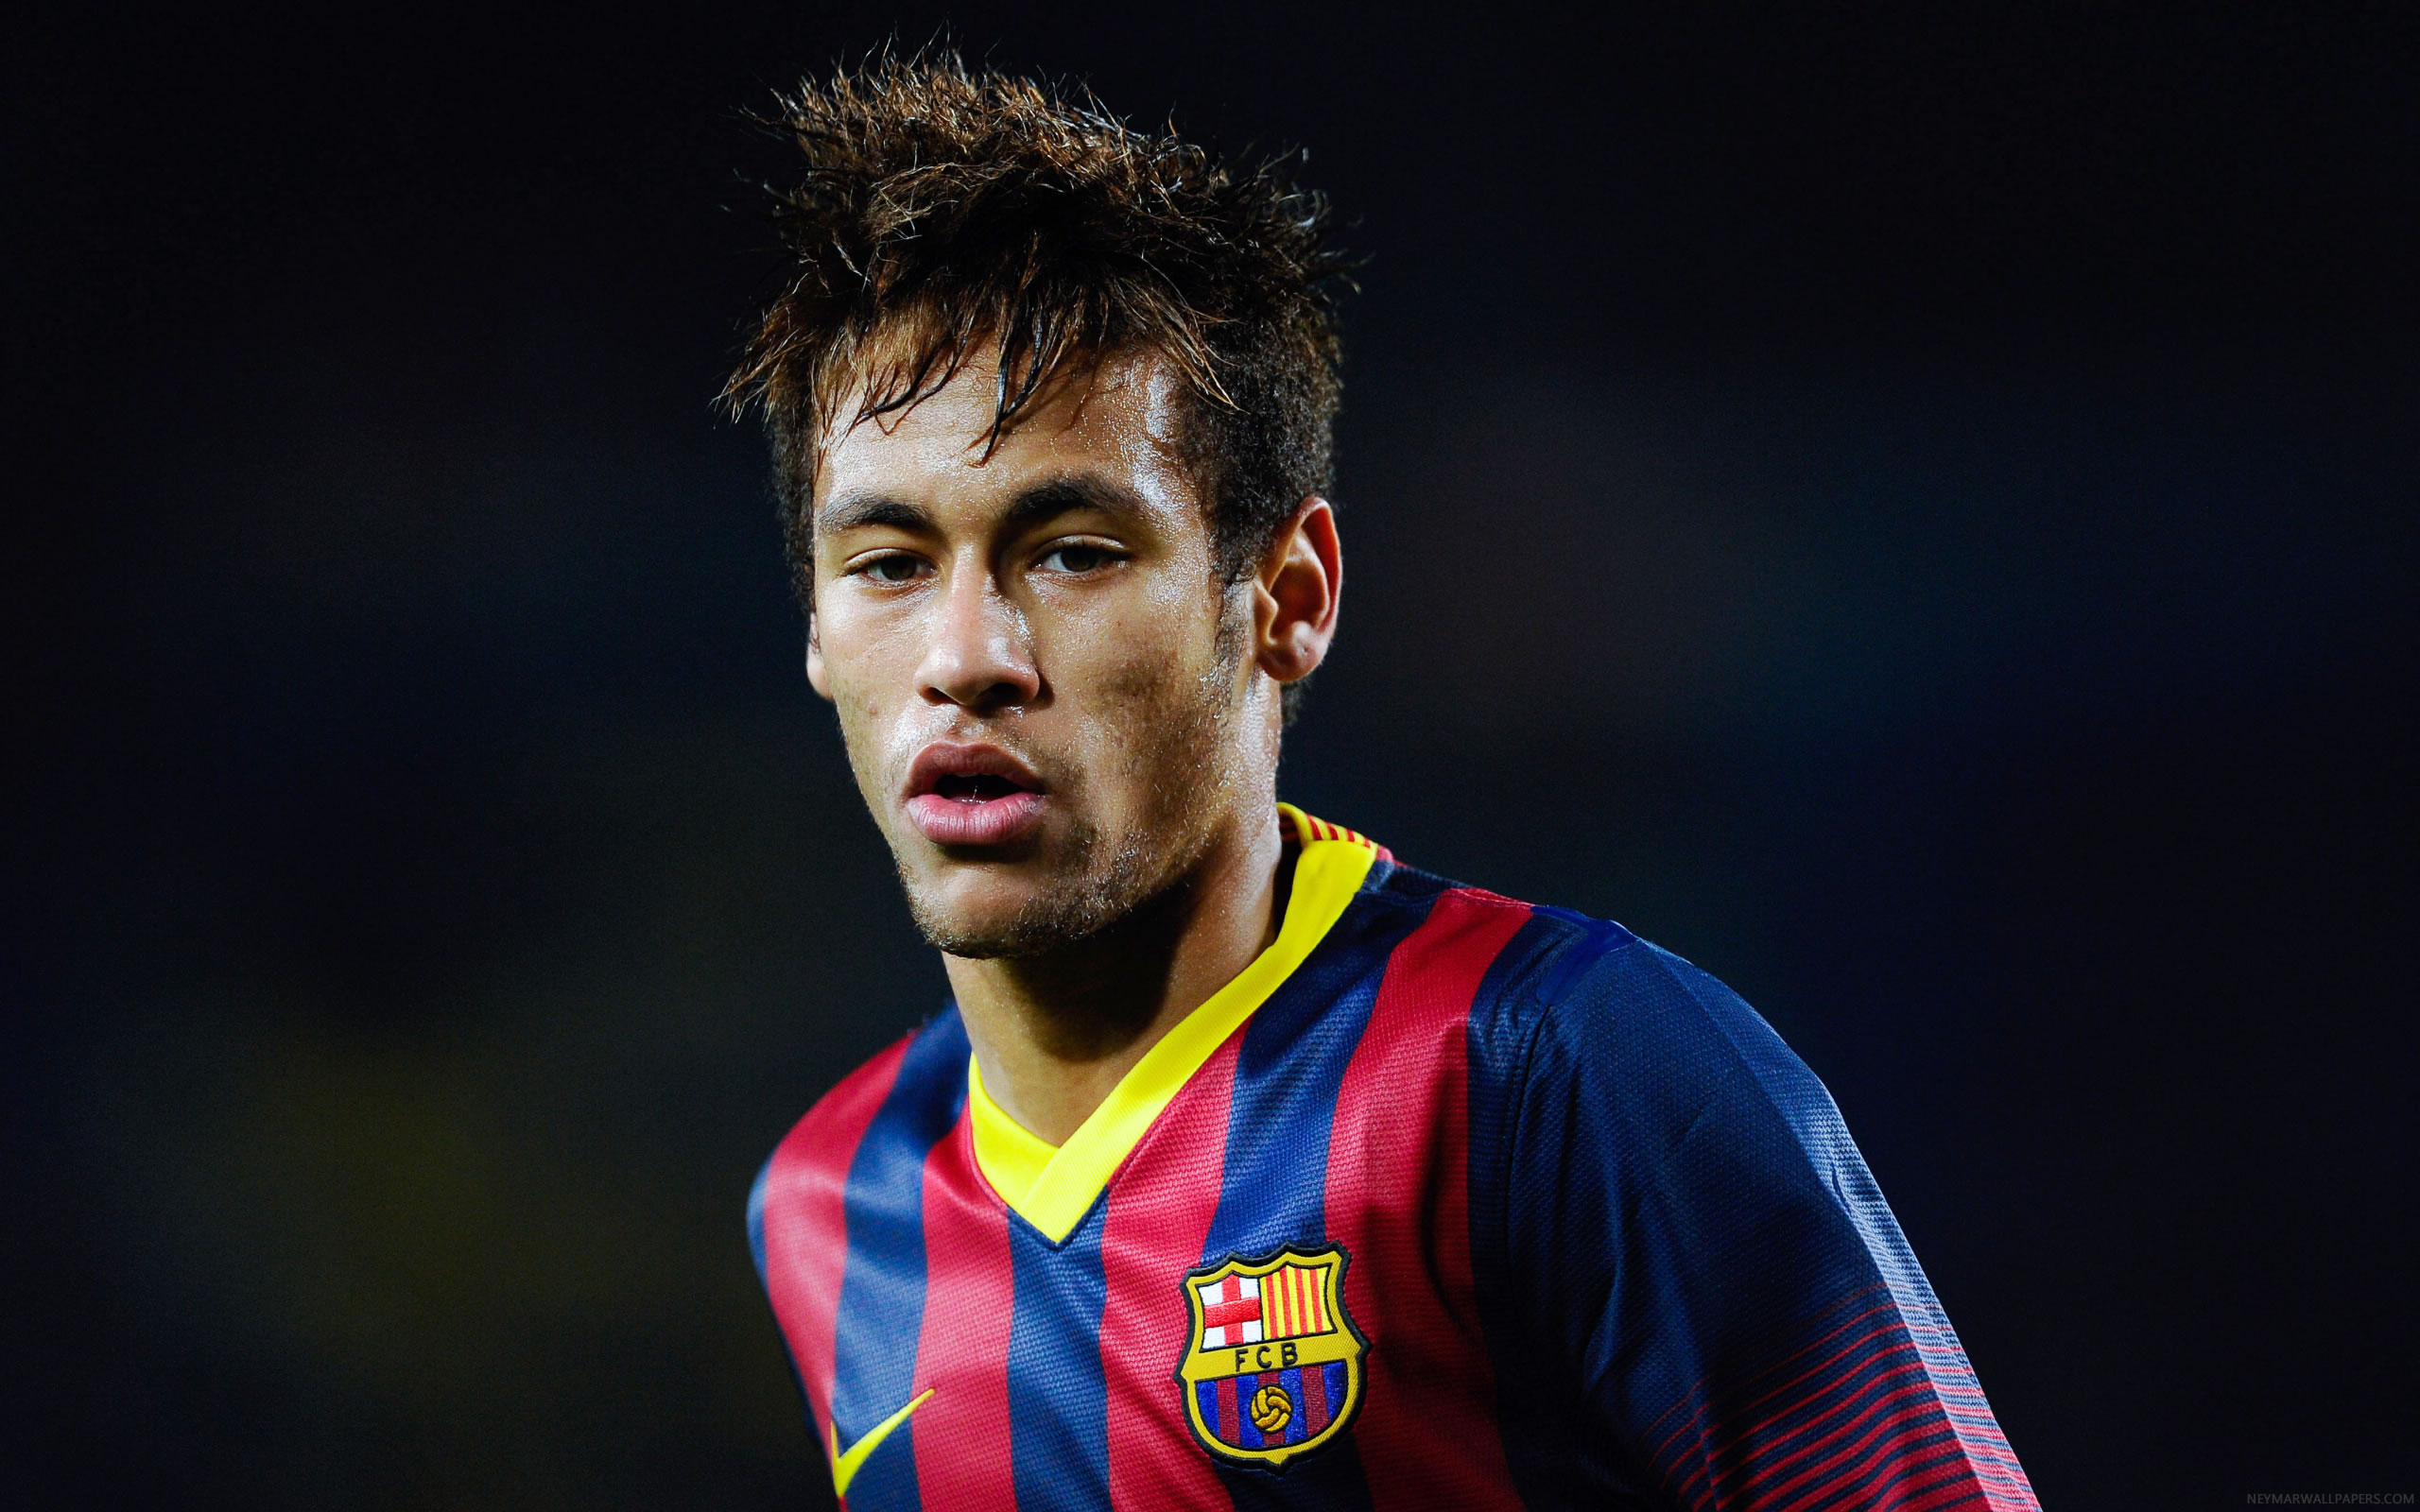 Tired Neymar wallpaper